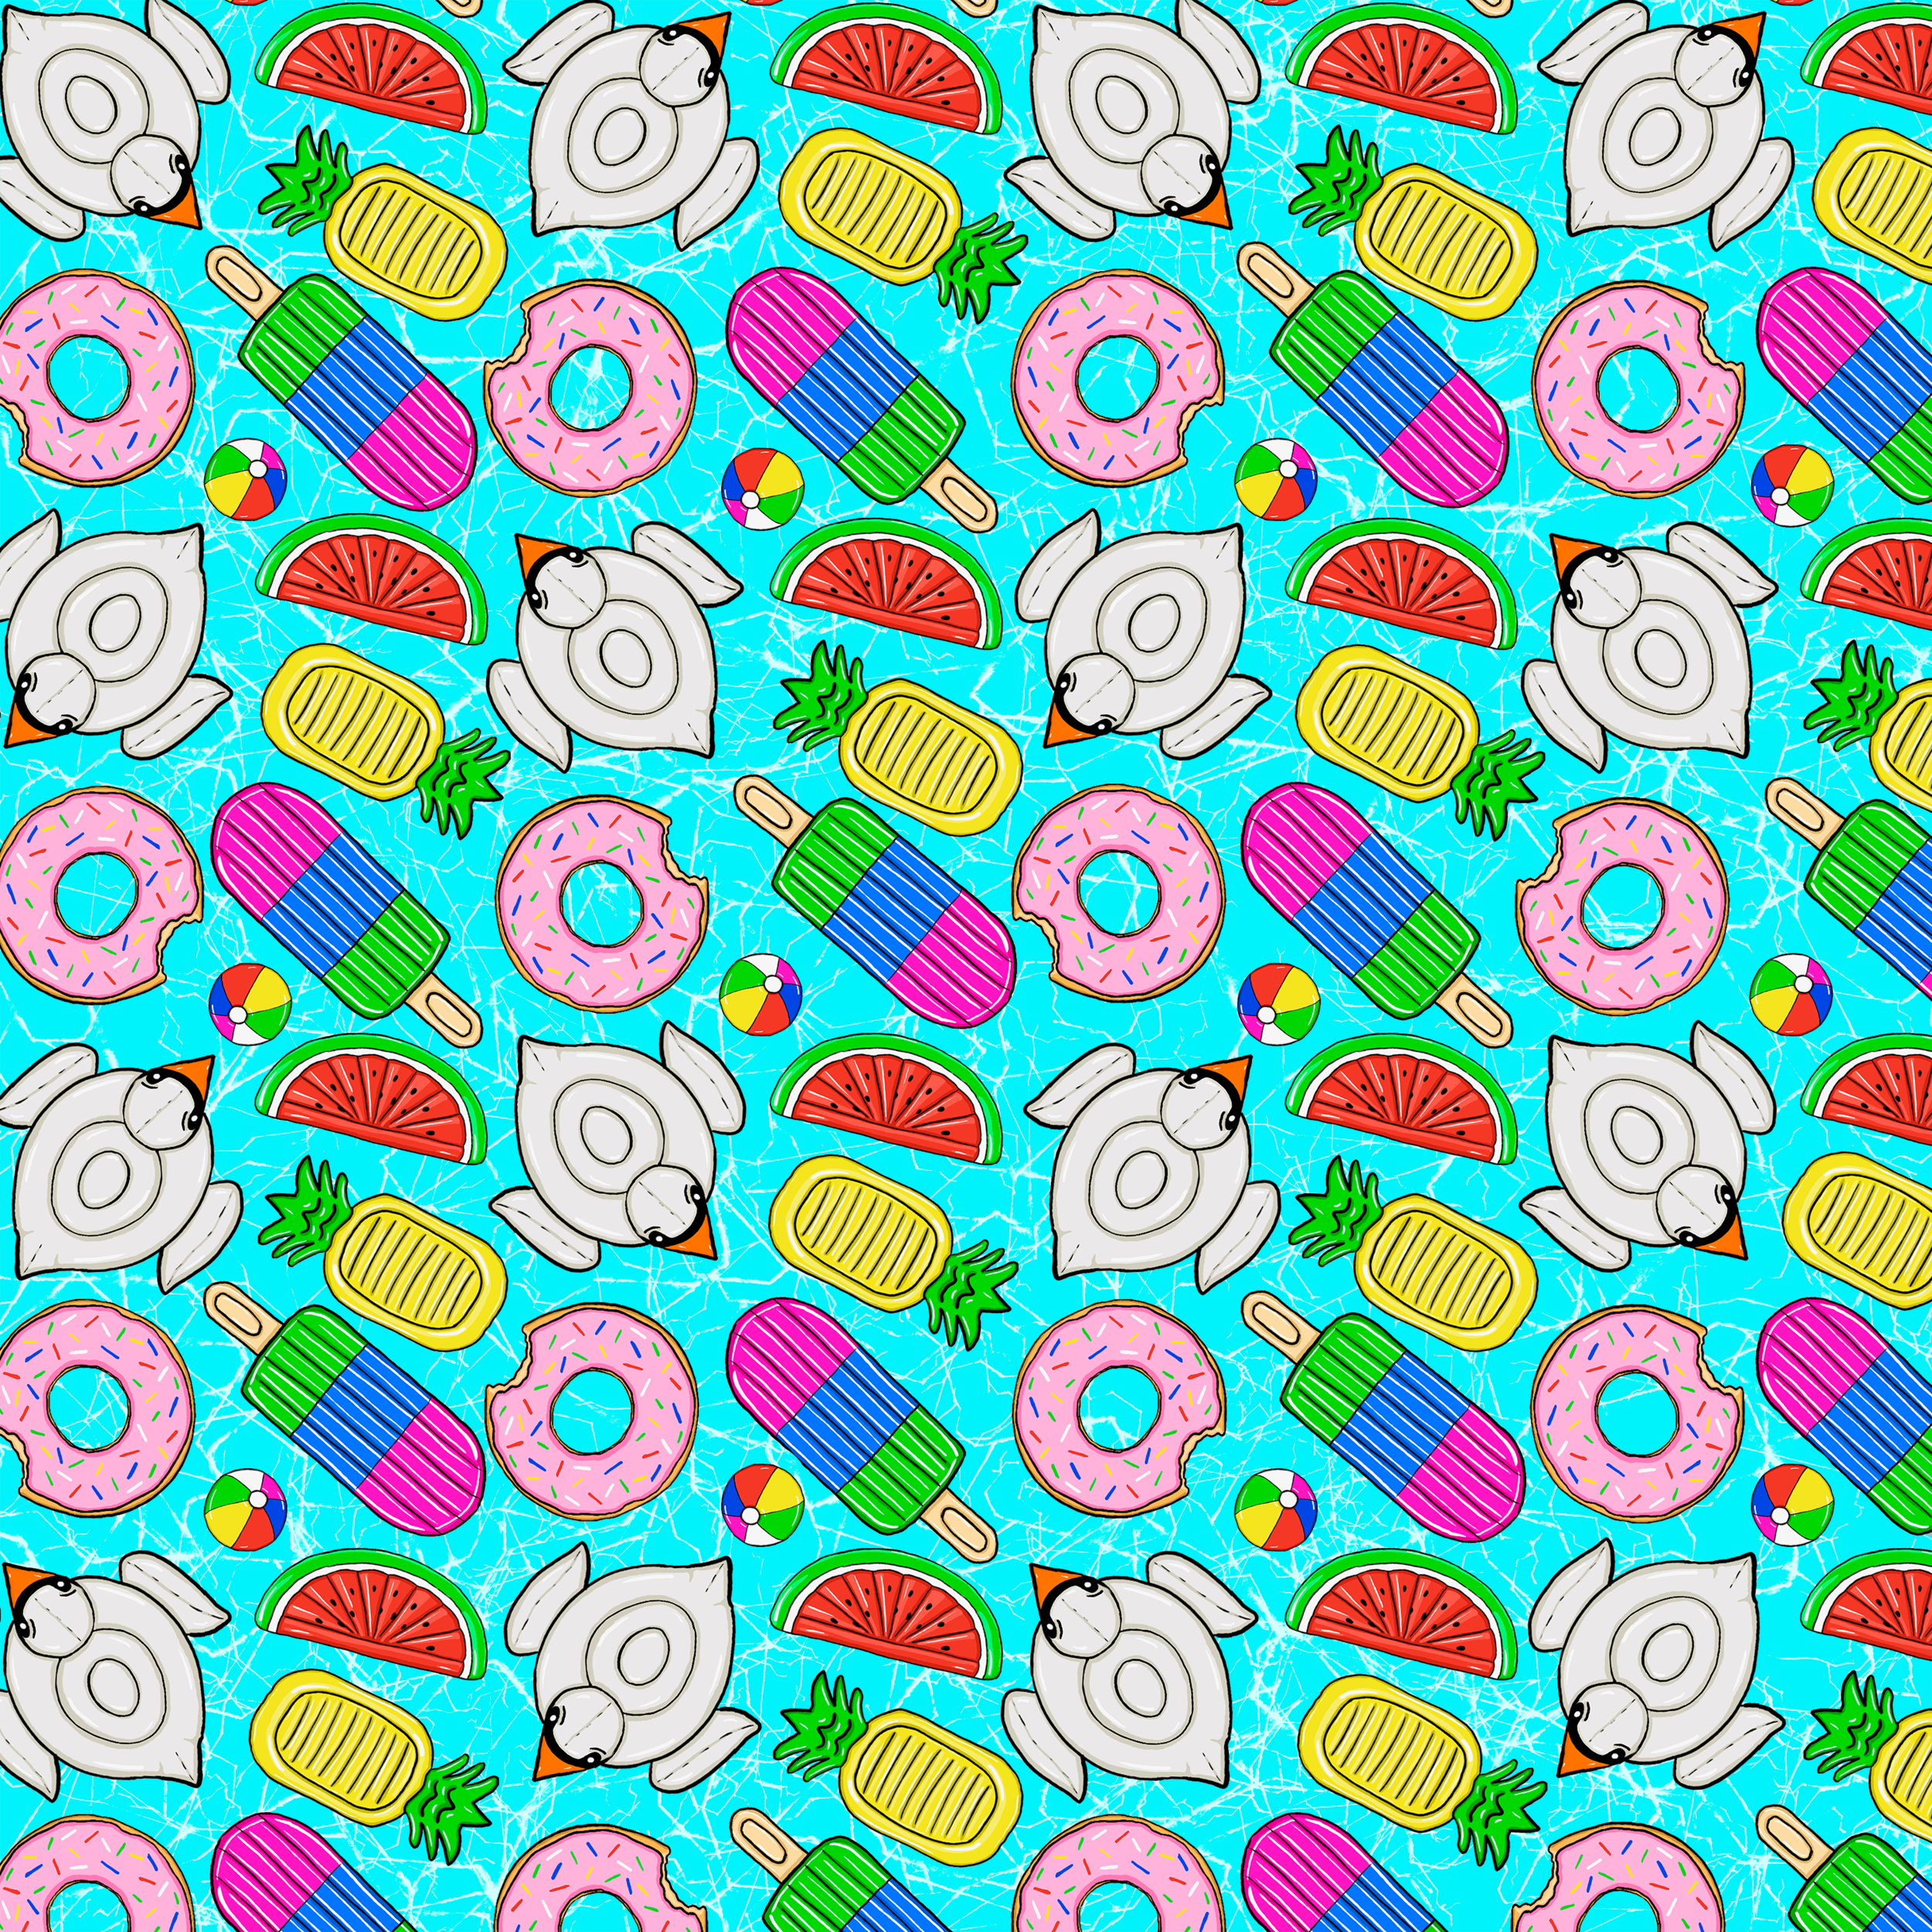 pool float pattern for portfolio and IG.png